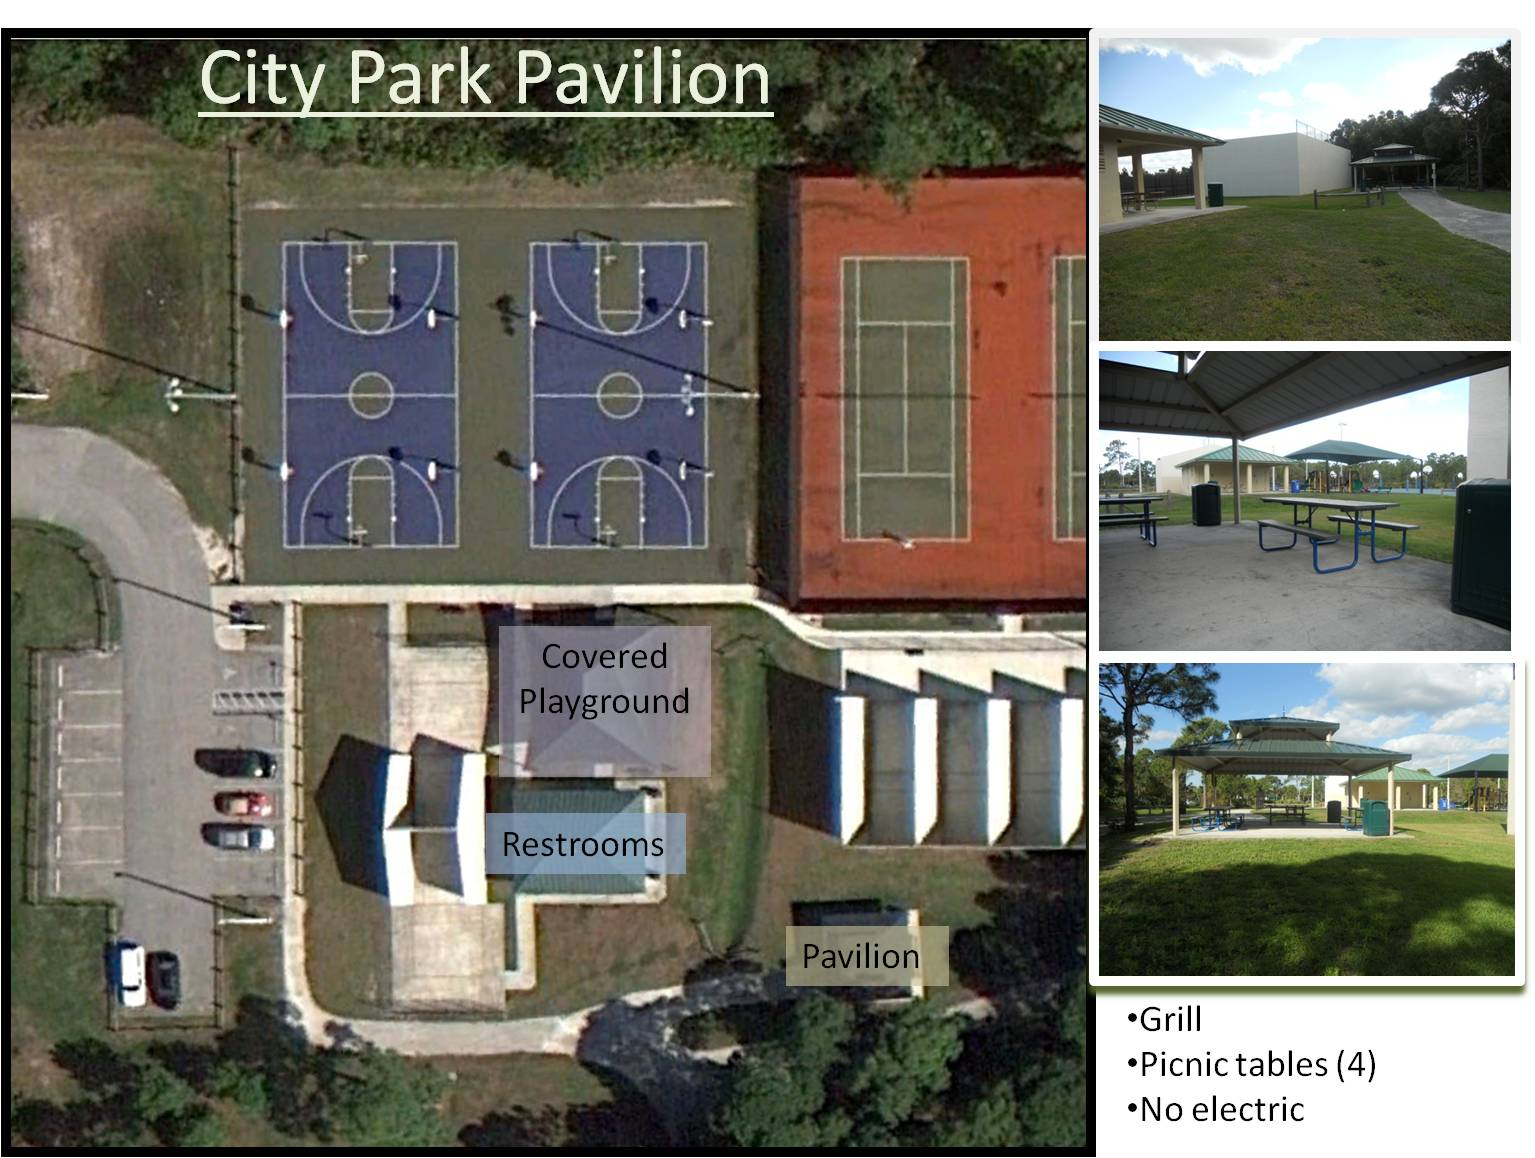 Arial map of City Park with pavilions.